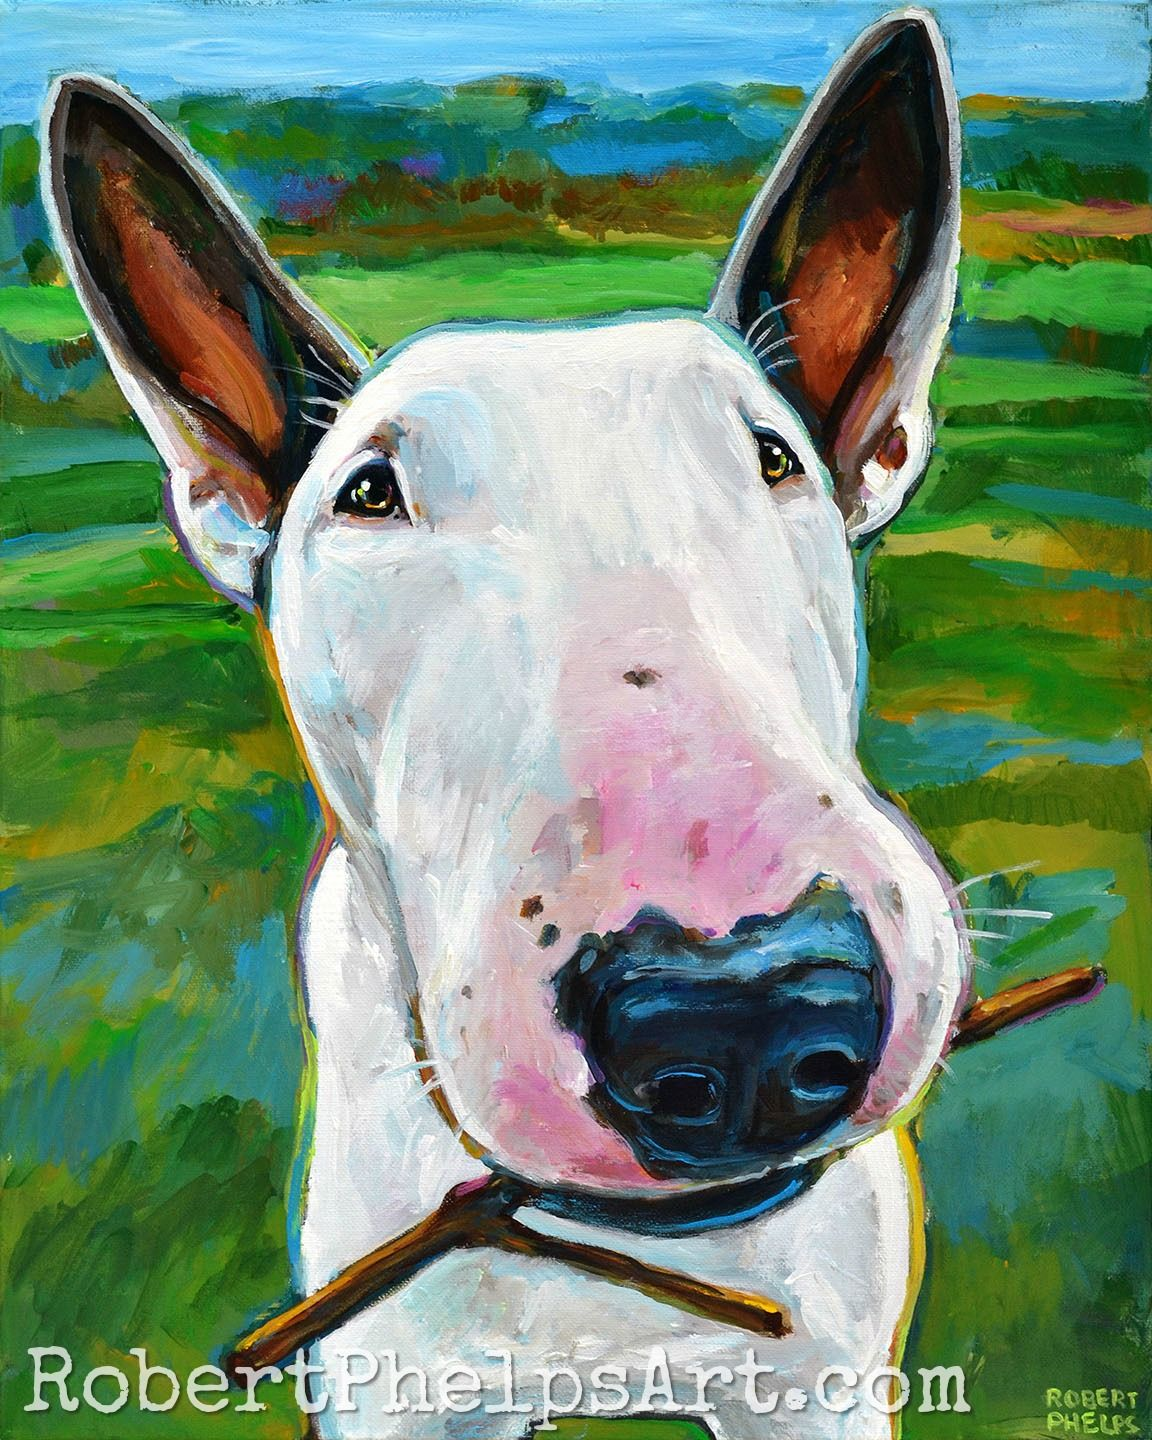 This Is A Custom Pet Portrait Of A Beautiful White Pitbull By